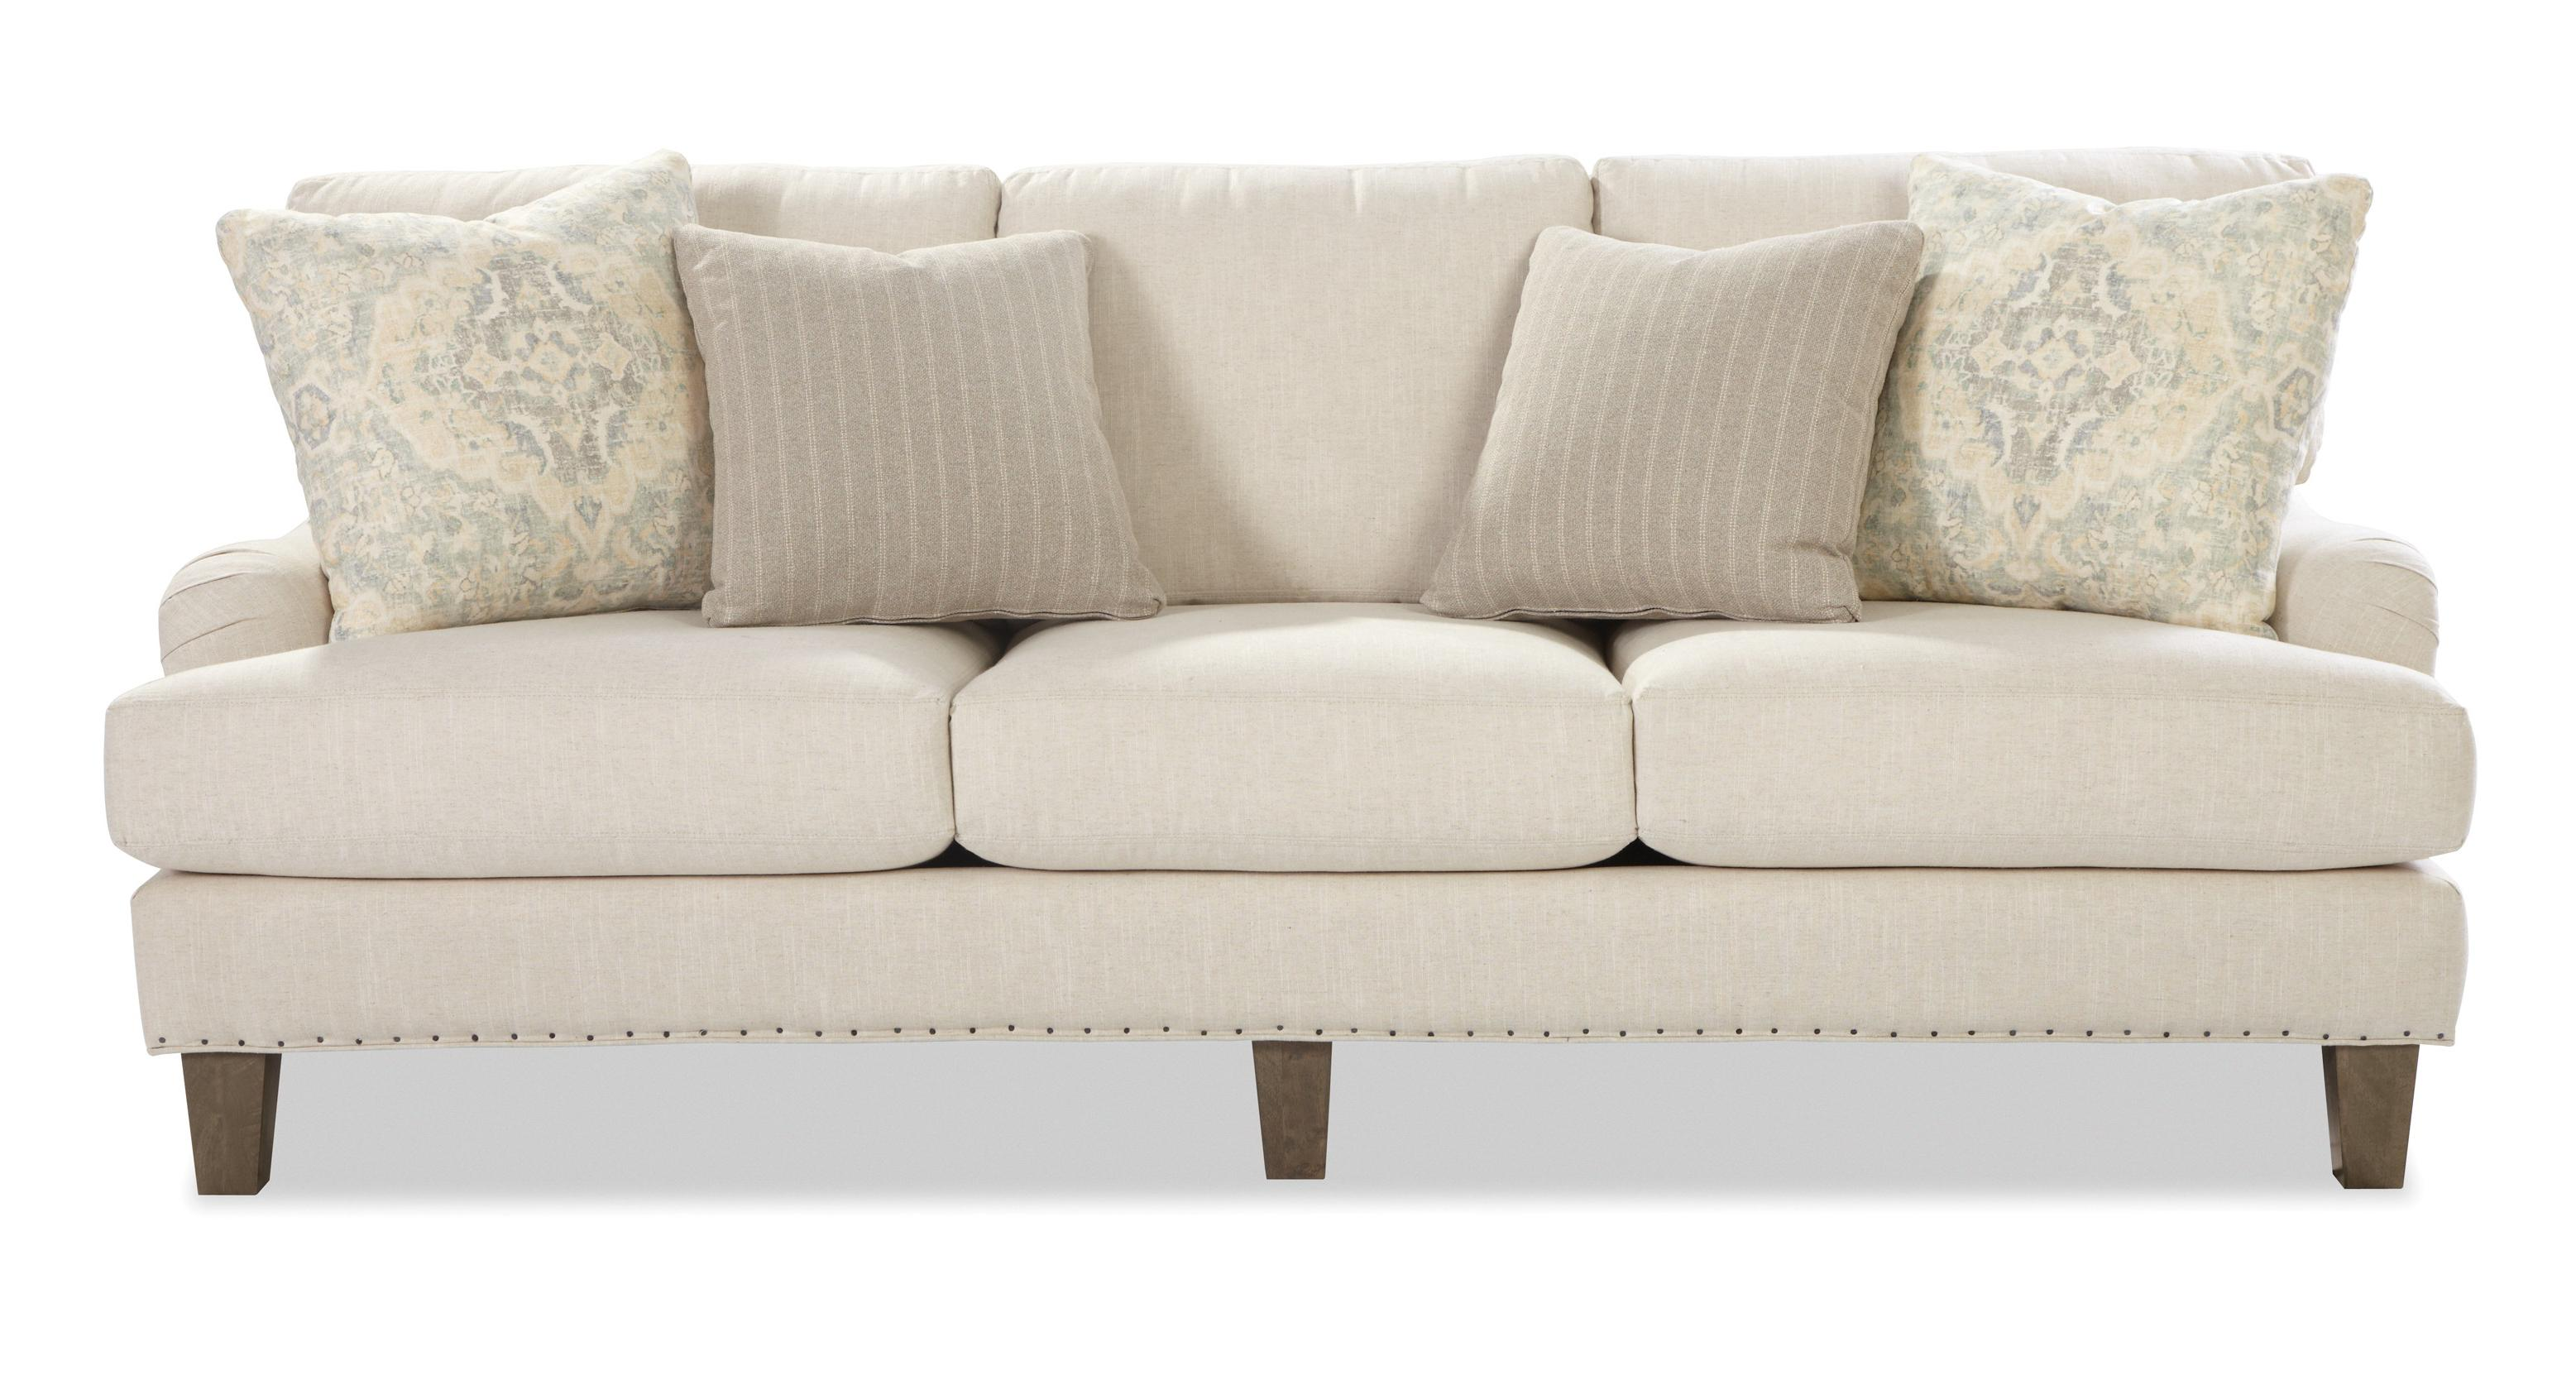 Transitional English Arm Sofa with Vintage Tack Trim by